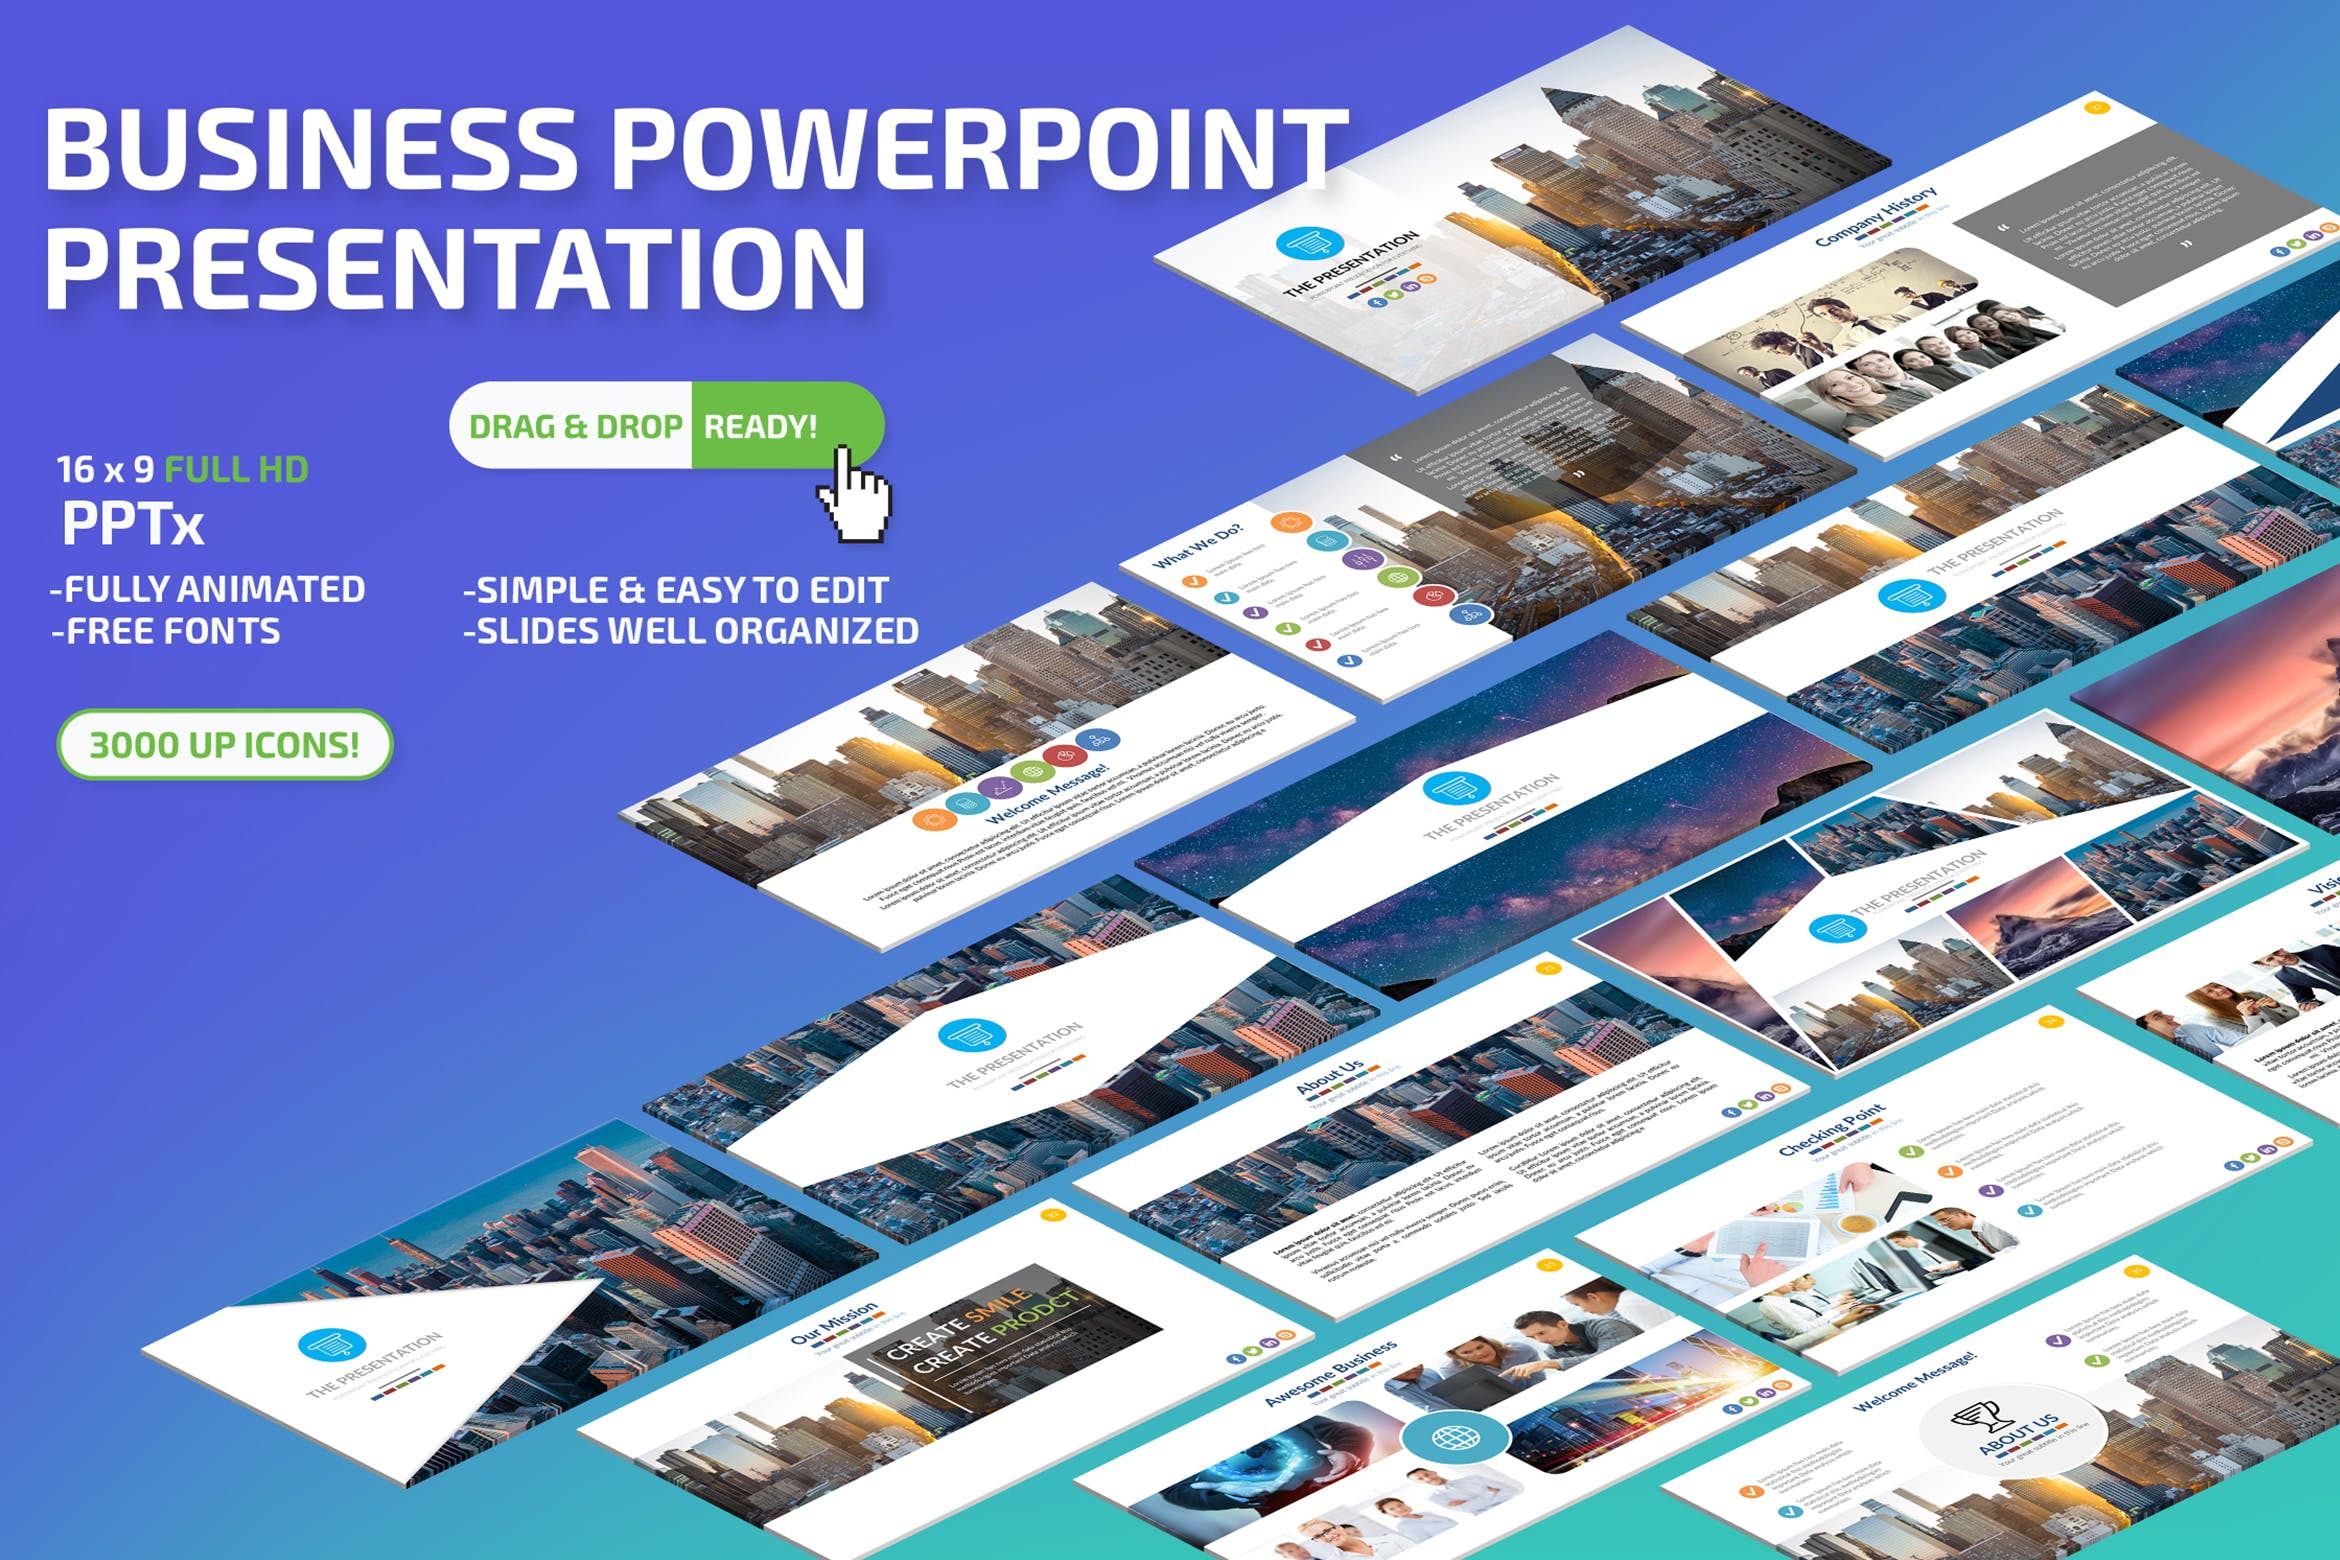 Business Powerpoint Presentation by -BeCreative- on Envato